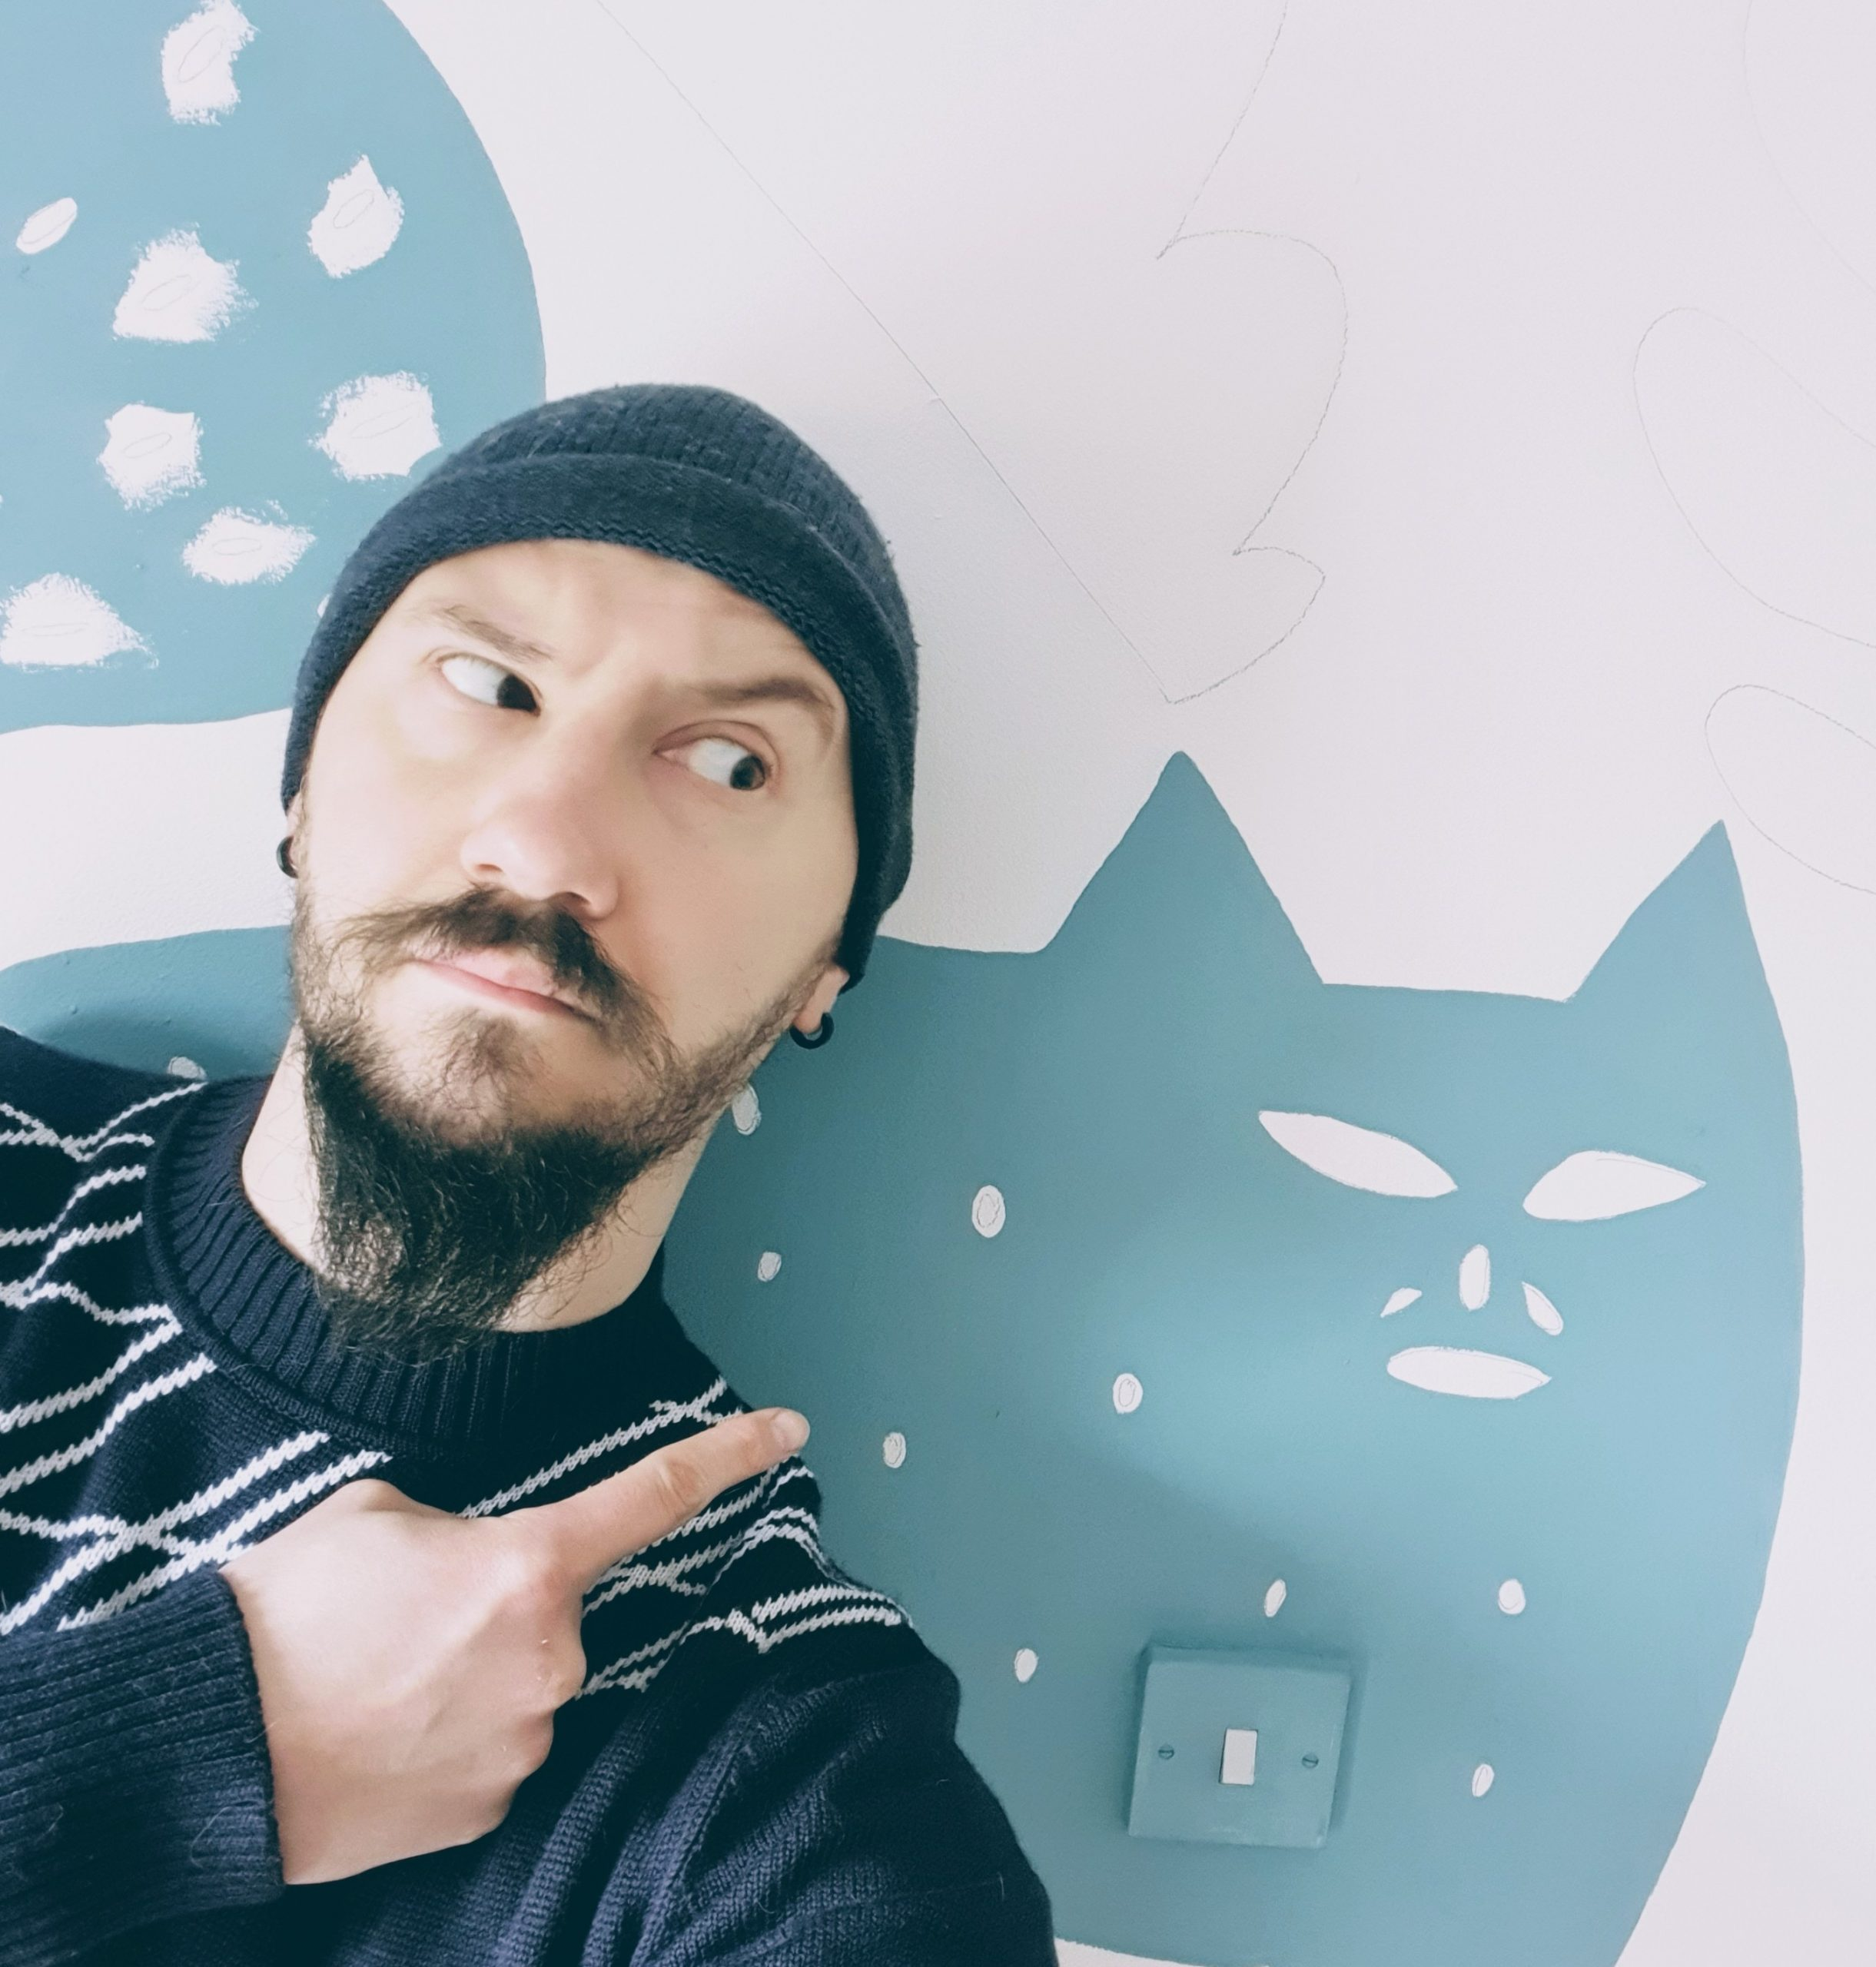 image of Filip pointing behind him to a wall mural of a blue cat.